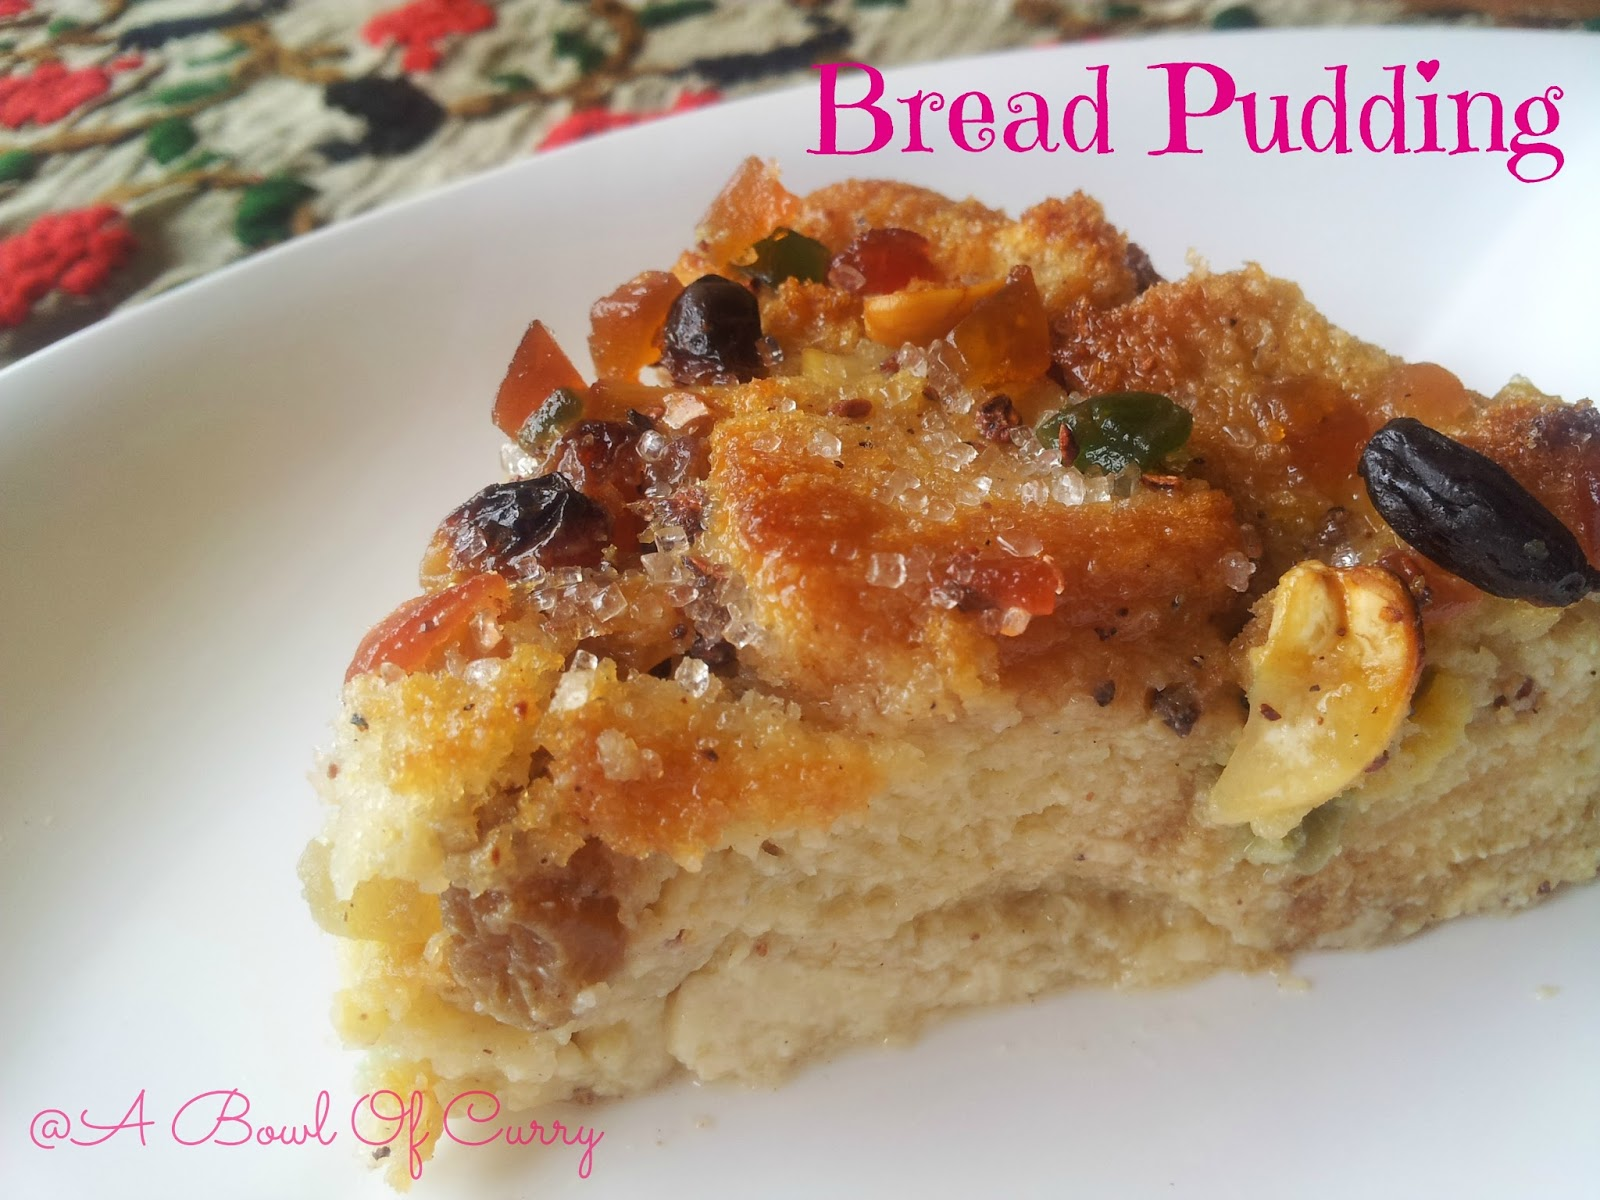 Bowl Of Curry: Easy Bread Pudding with Nuts and Raisins